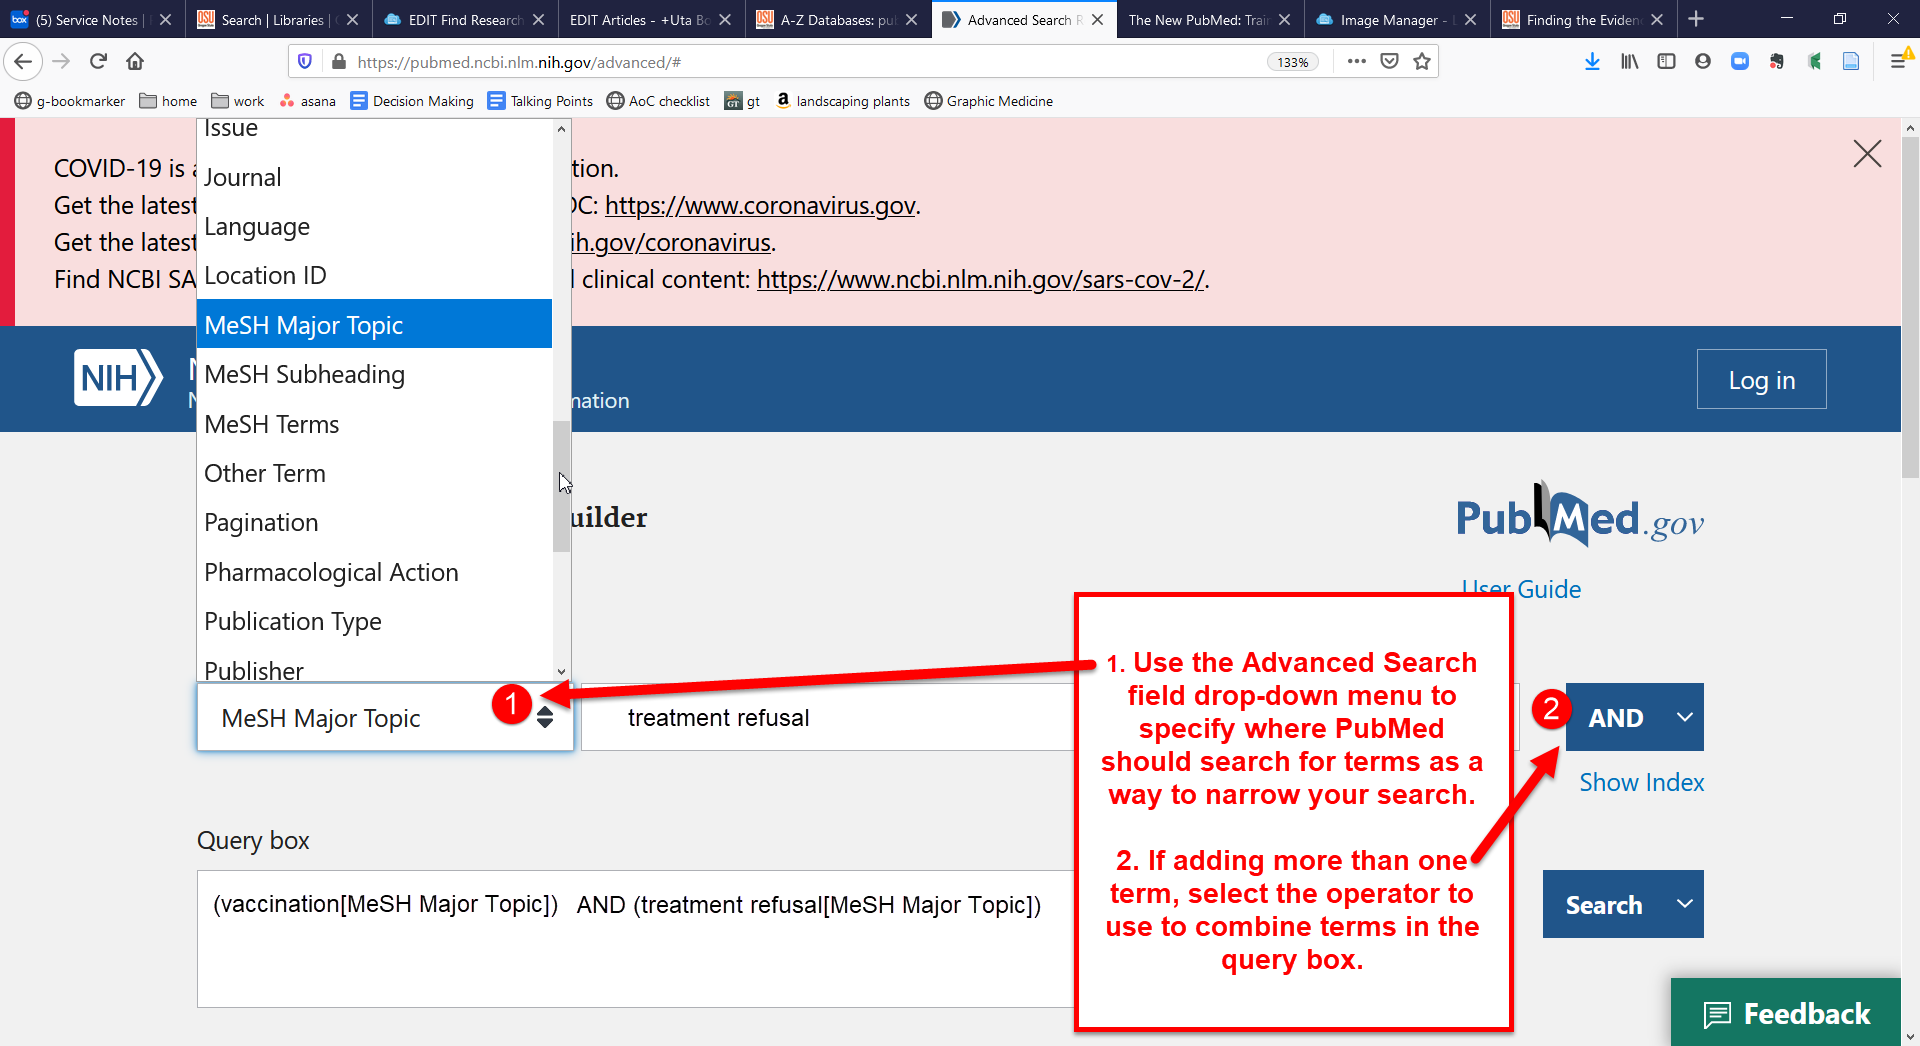 image of pubmed advanced search page search fields